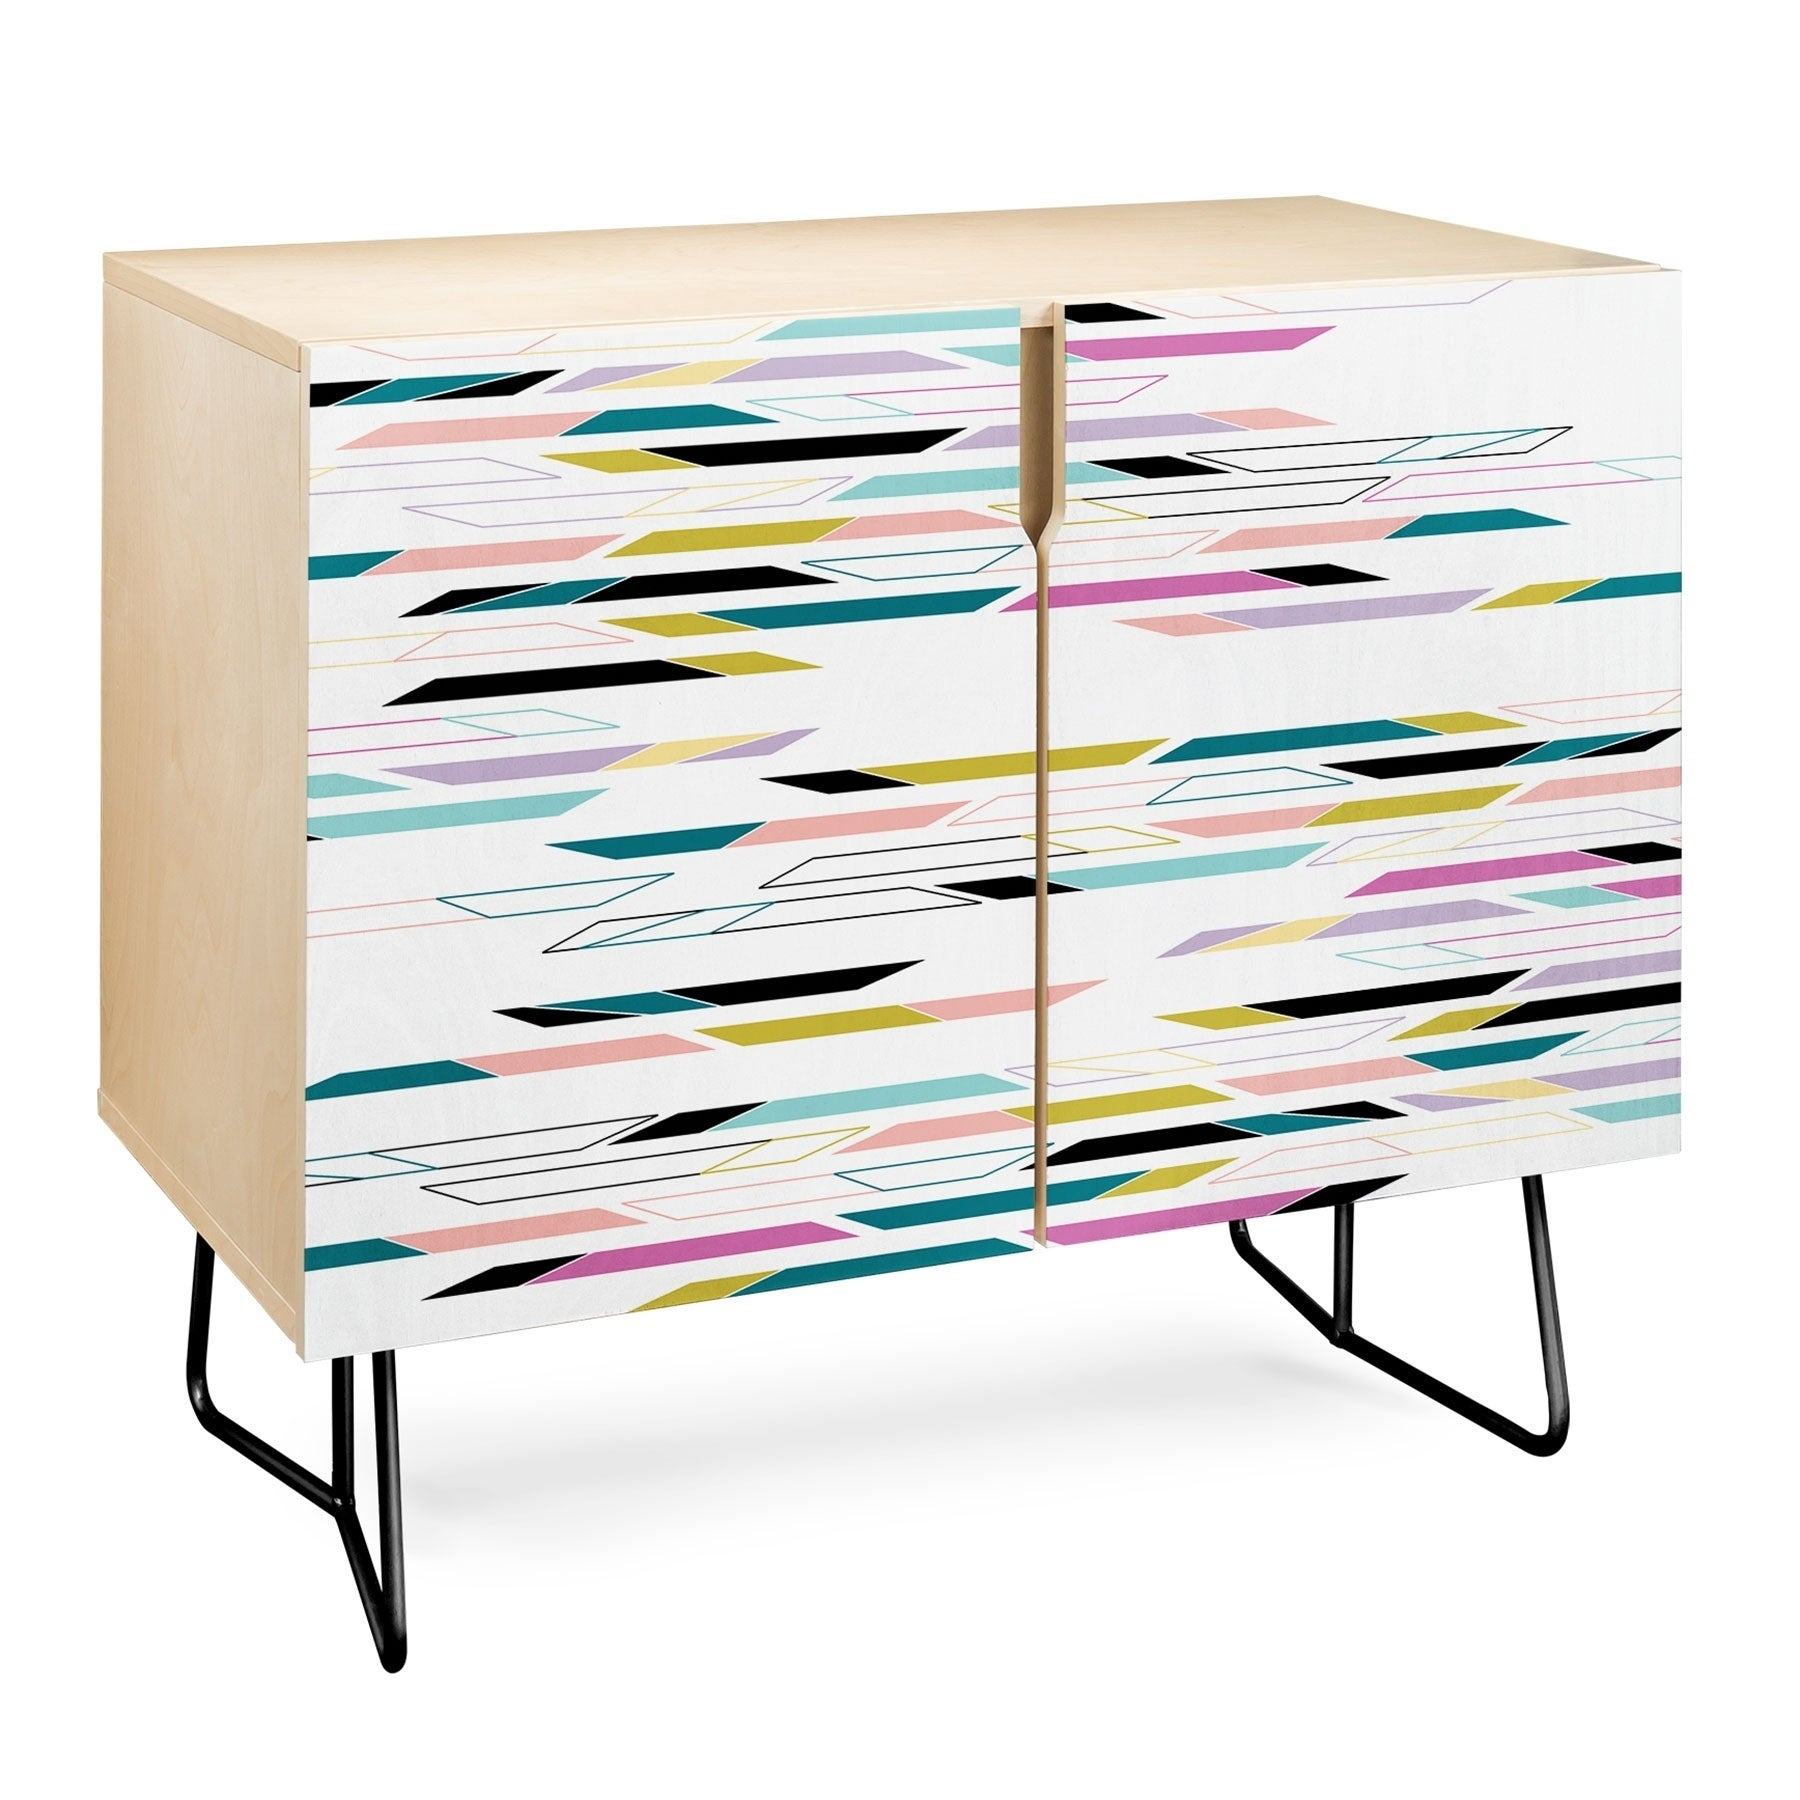 Deny Designs Multi Colored Geometric Shapes Credenza (Birch Or Walnut, 3 Leg Options) Throughout Geometric Shapes Credenzas (Gallery 11 of 30)